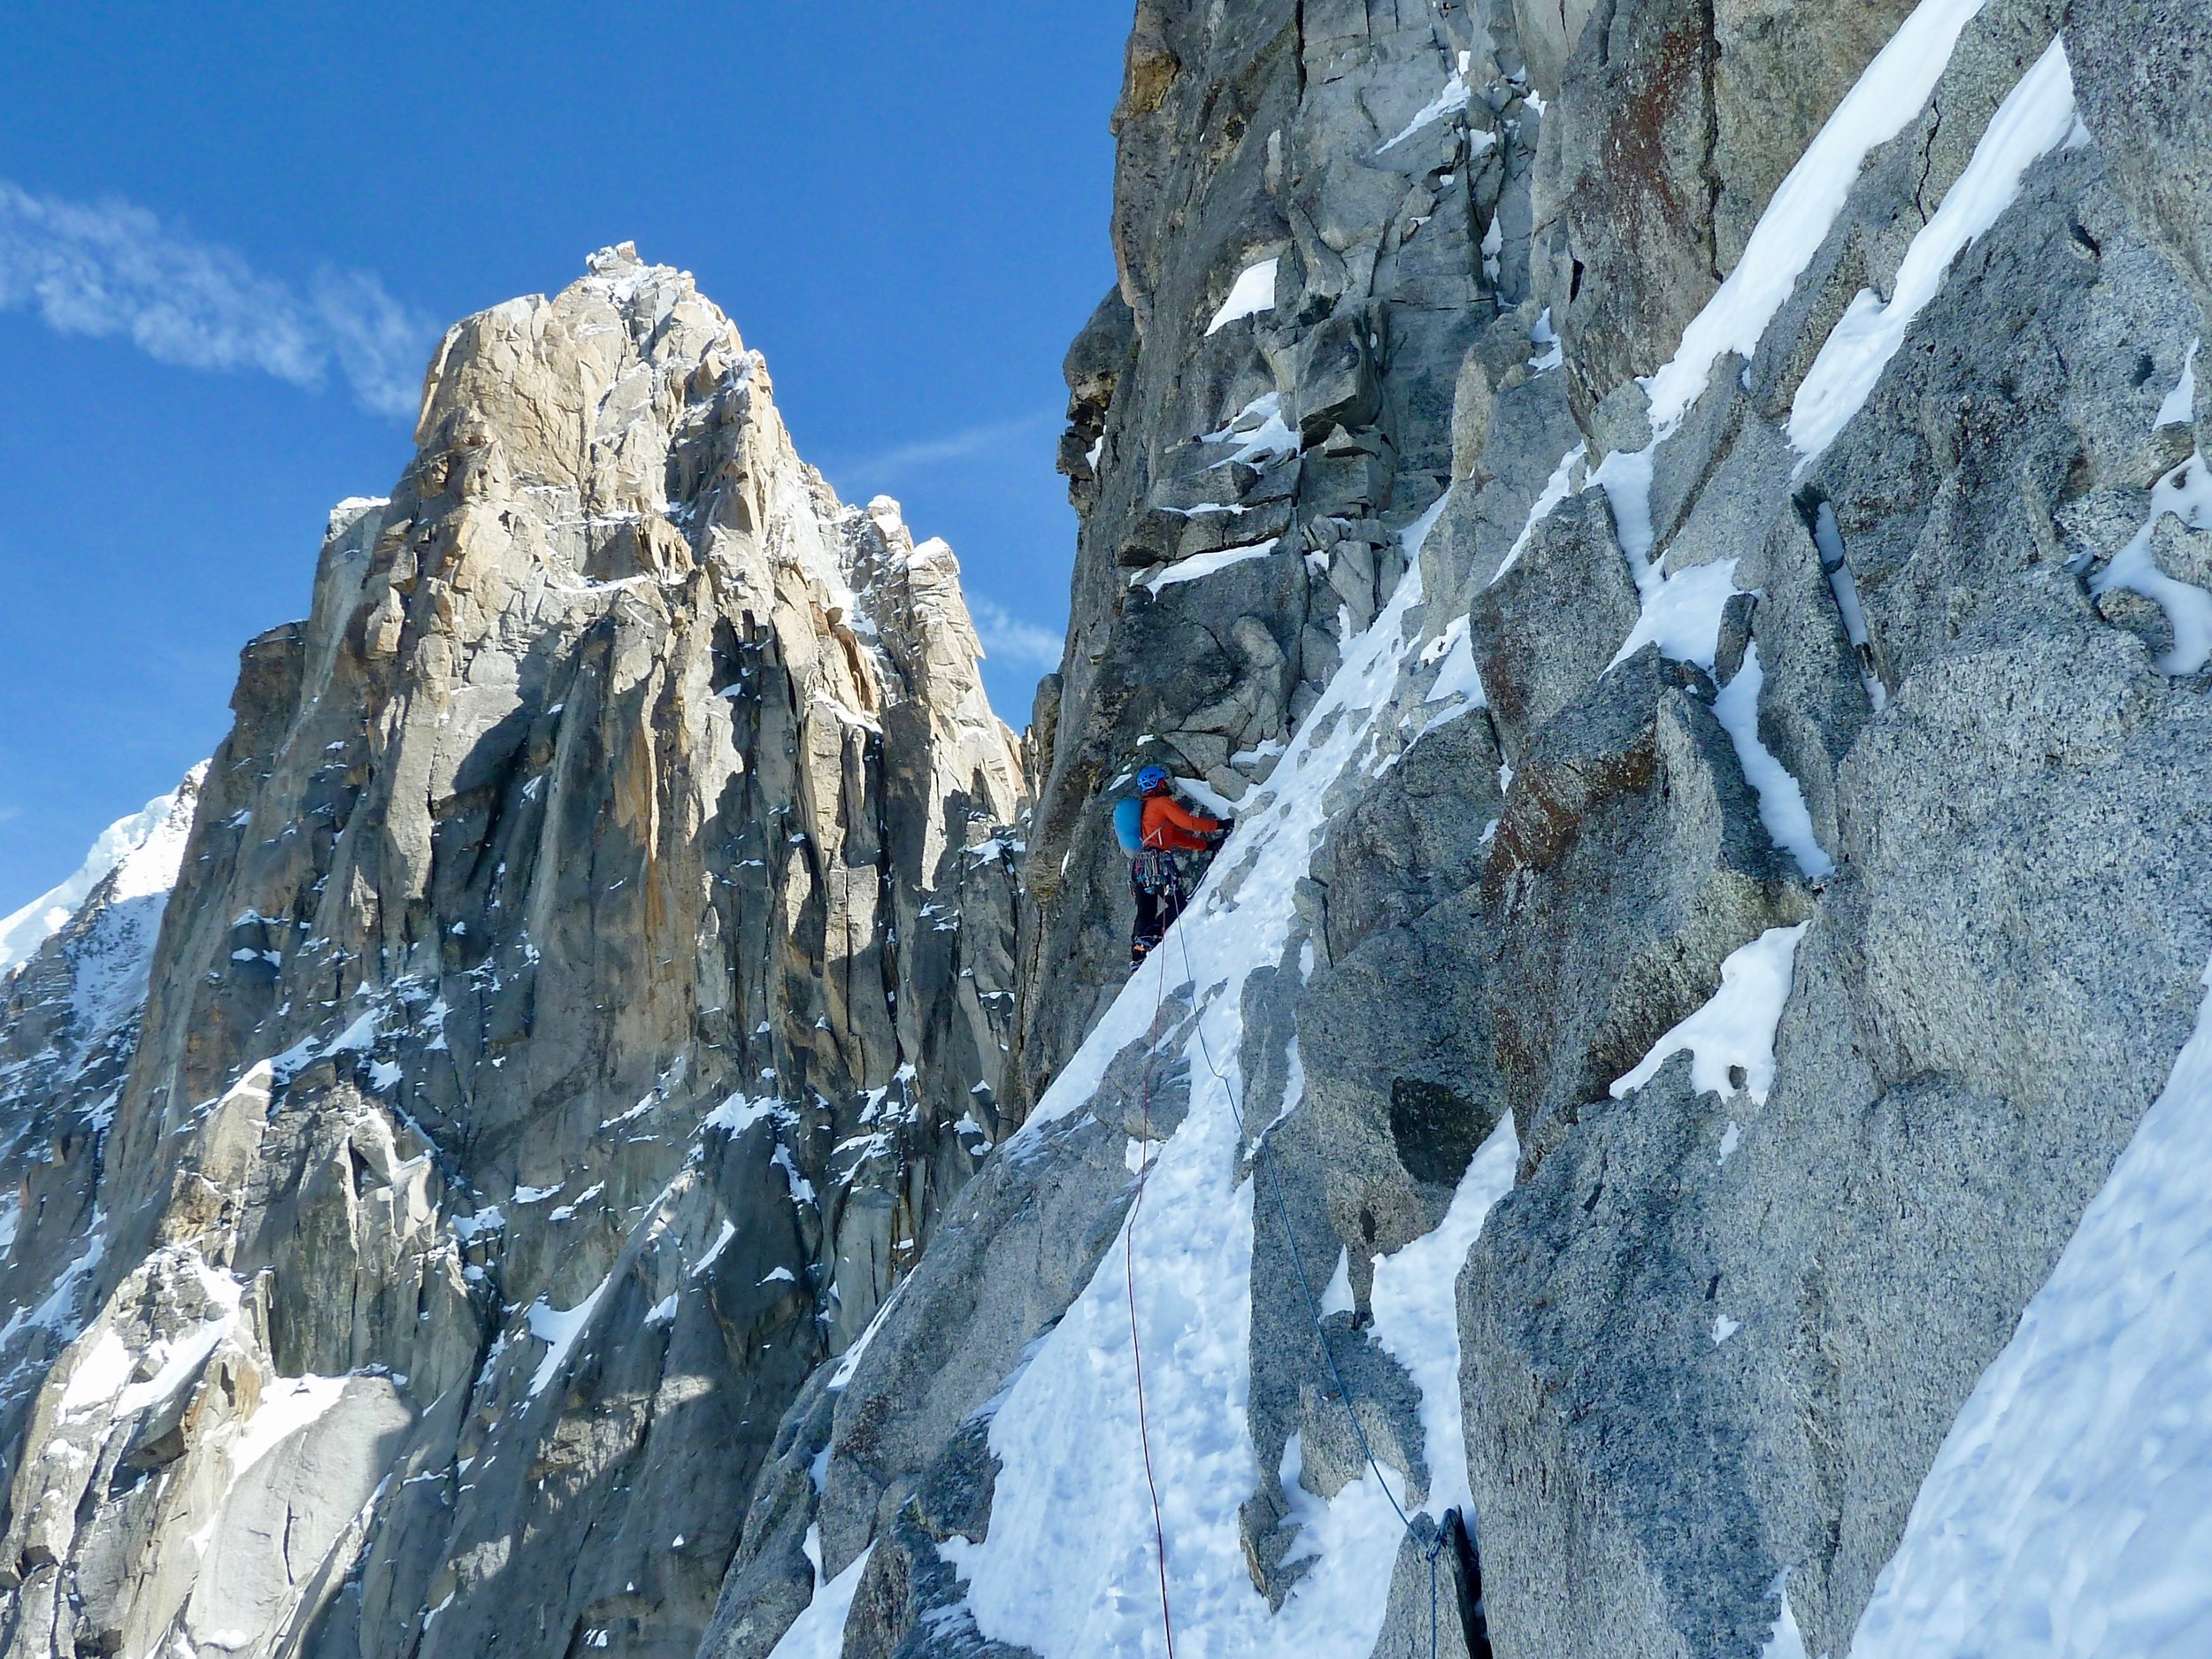 kim traversing leftwards on the first snowpatch